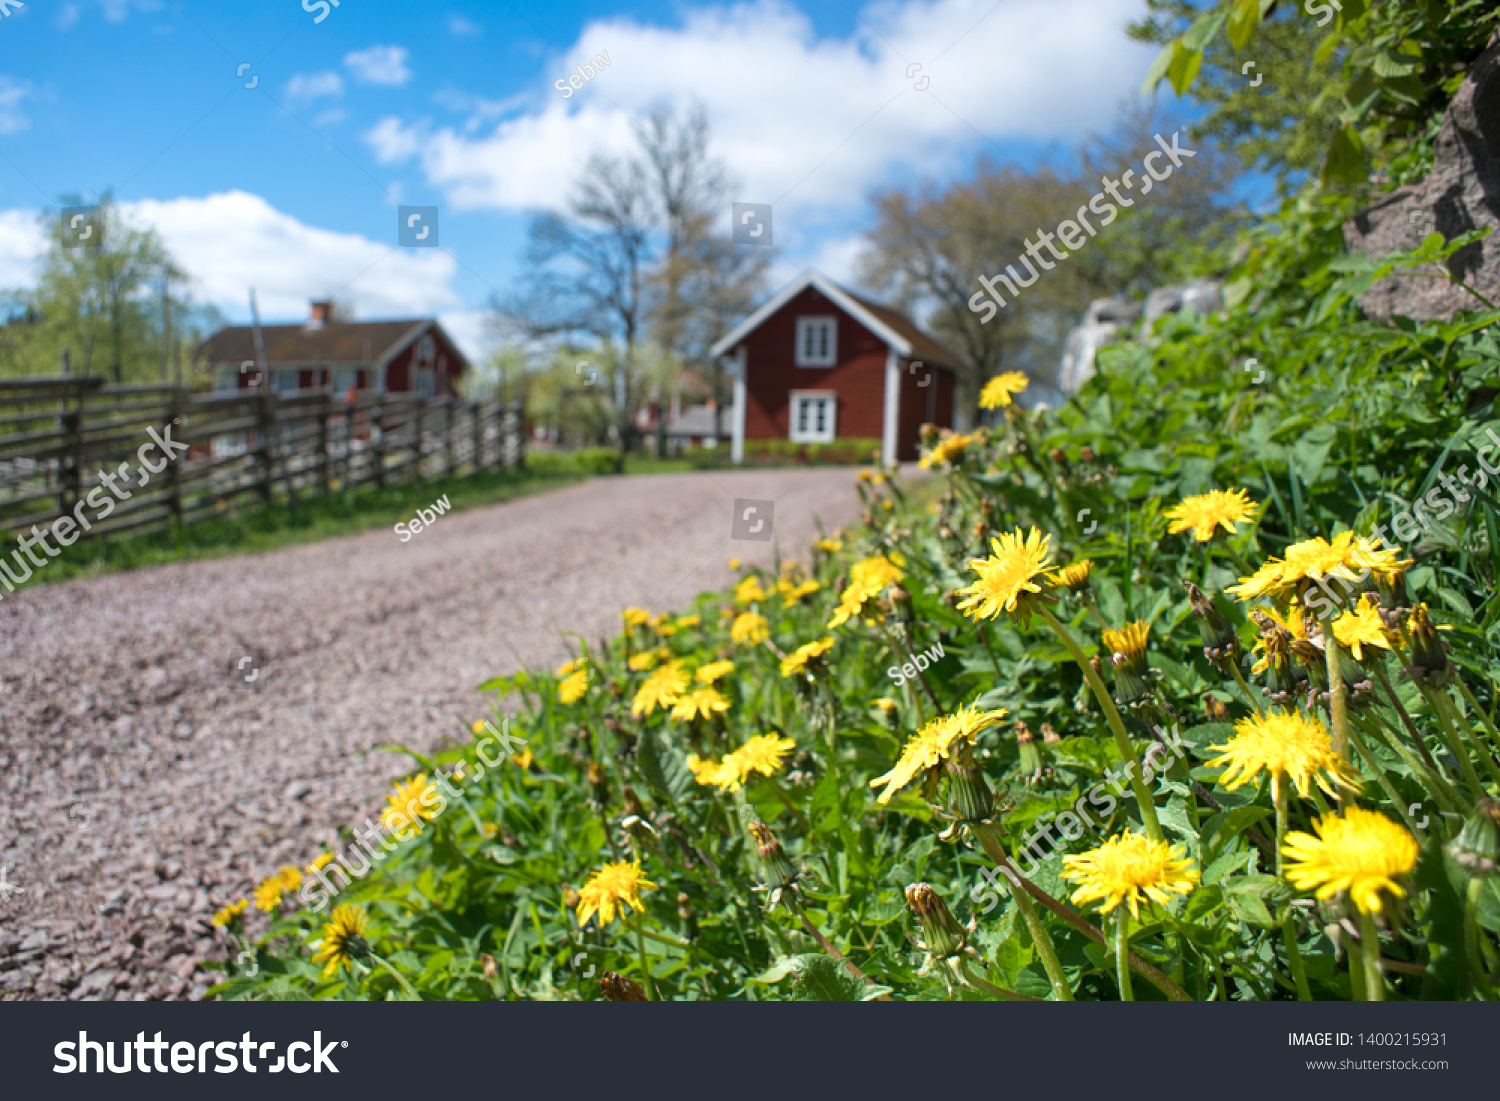 Countryside summer idyll with Green grass Yellow dandelion flowers beside road and wooden fence leading to small idyllic Swedish village Åsens by Småland. #1400215931